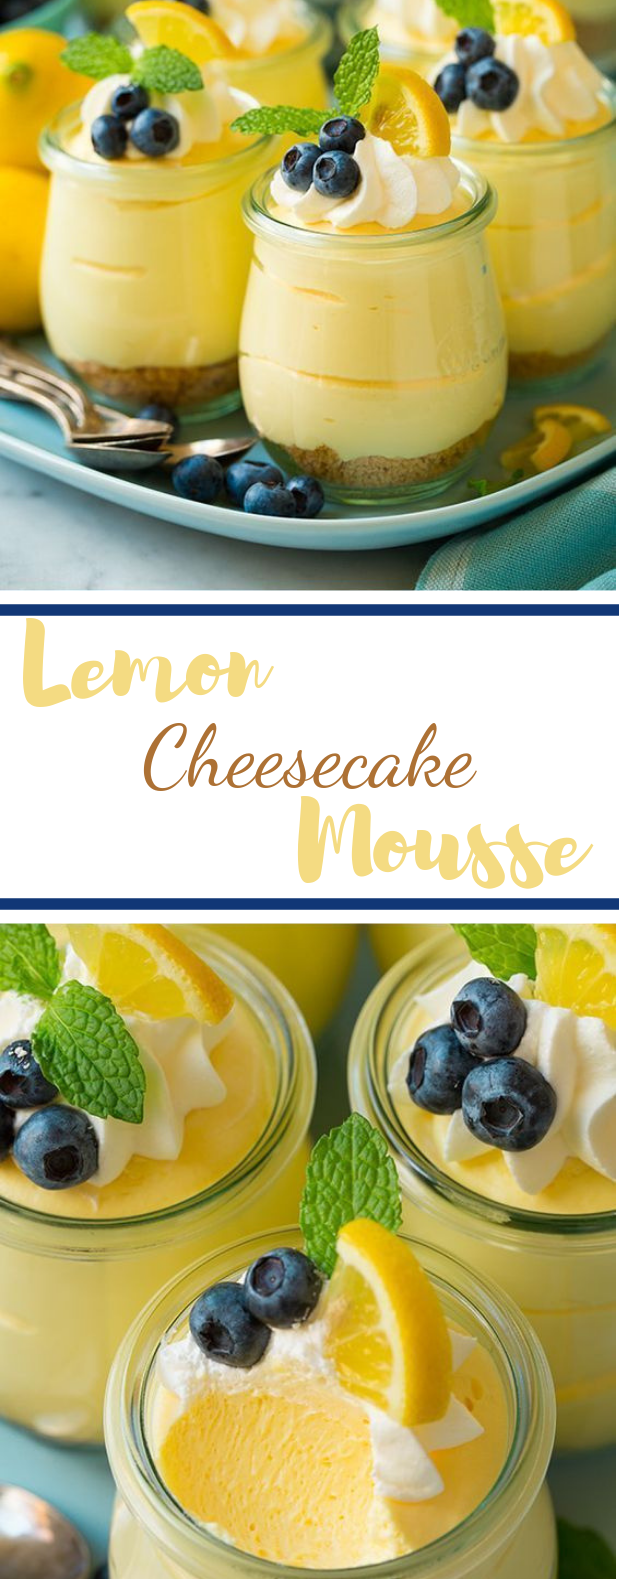 Lemon Cheesecake Mousse #summer #desserts